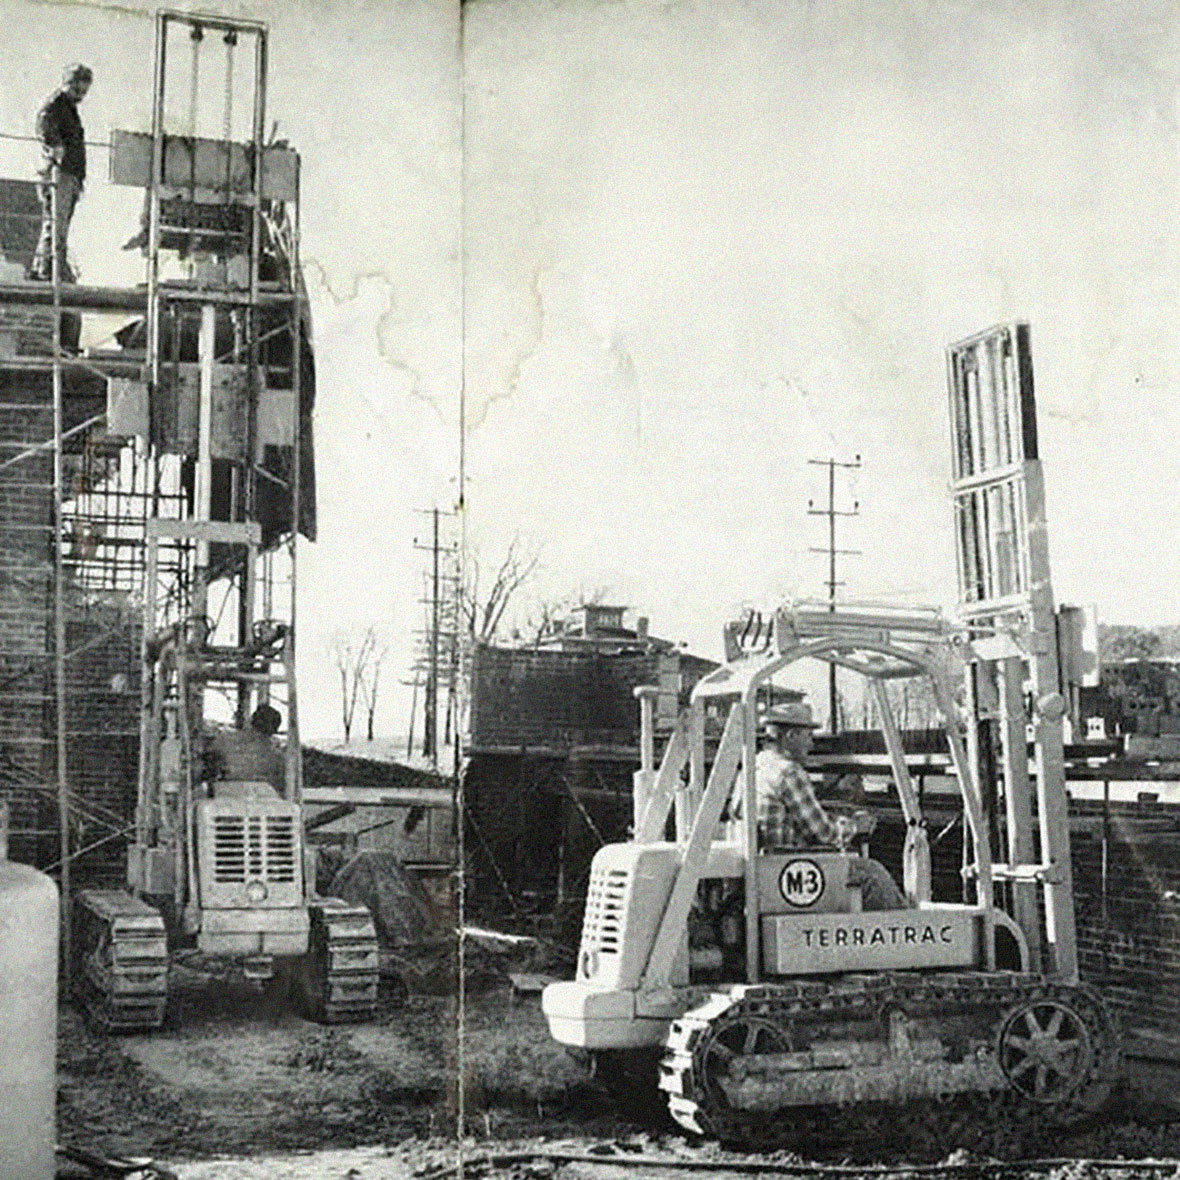 Material Handling Crawler Construction Forklifts for C.D. Smith Construction 1958 Commercial Projects Heavy Equipment Fleet